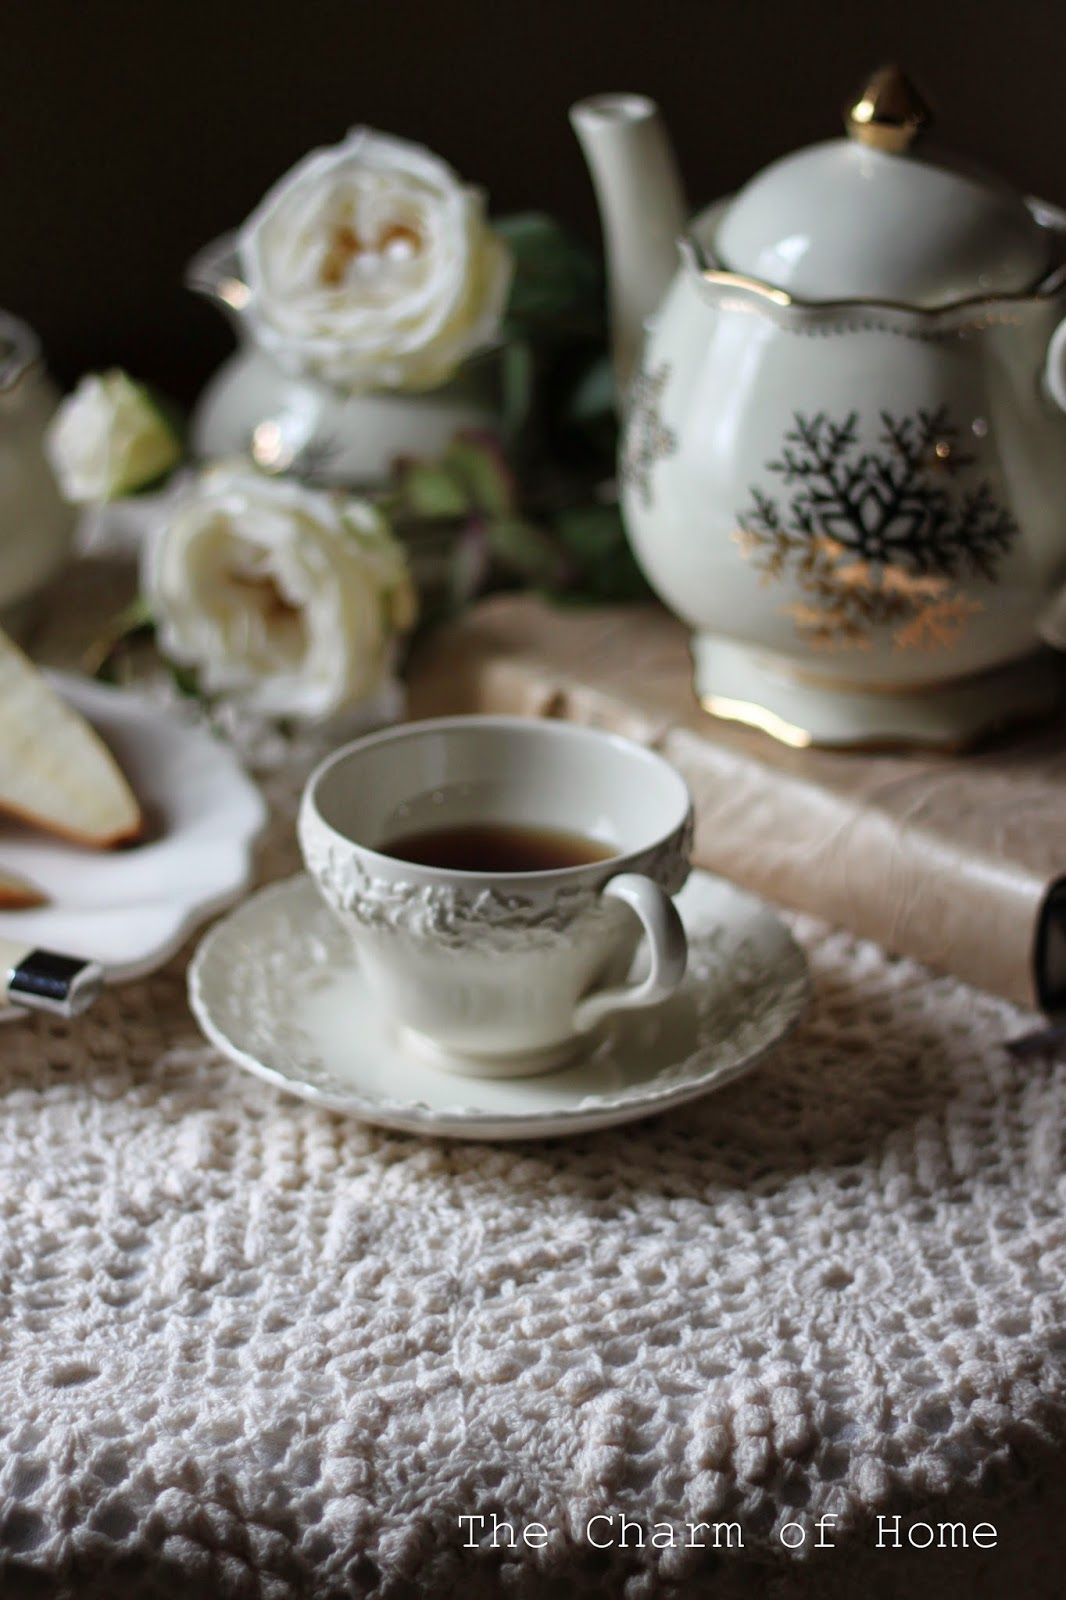 Winter White Tea, The Charm of Home